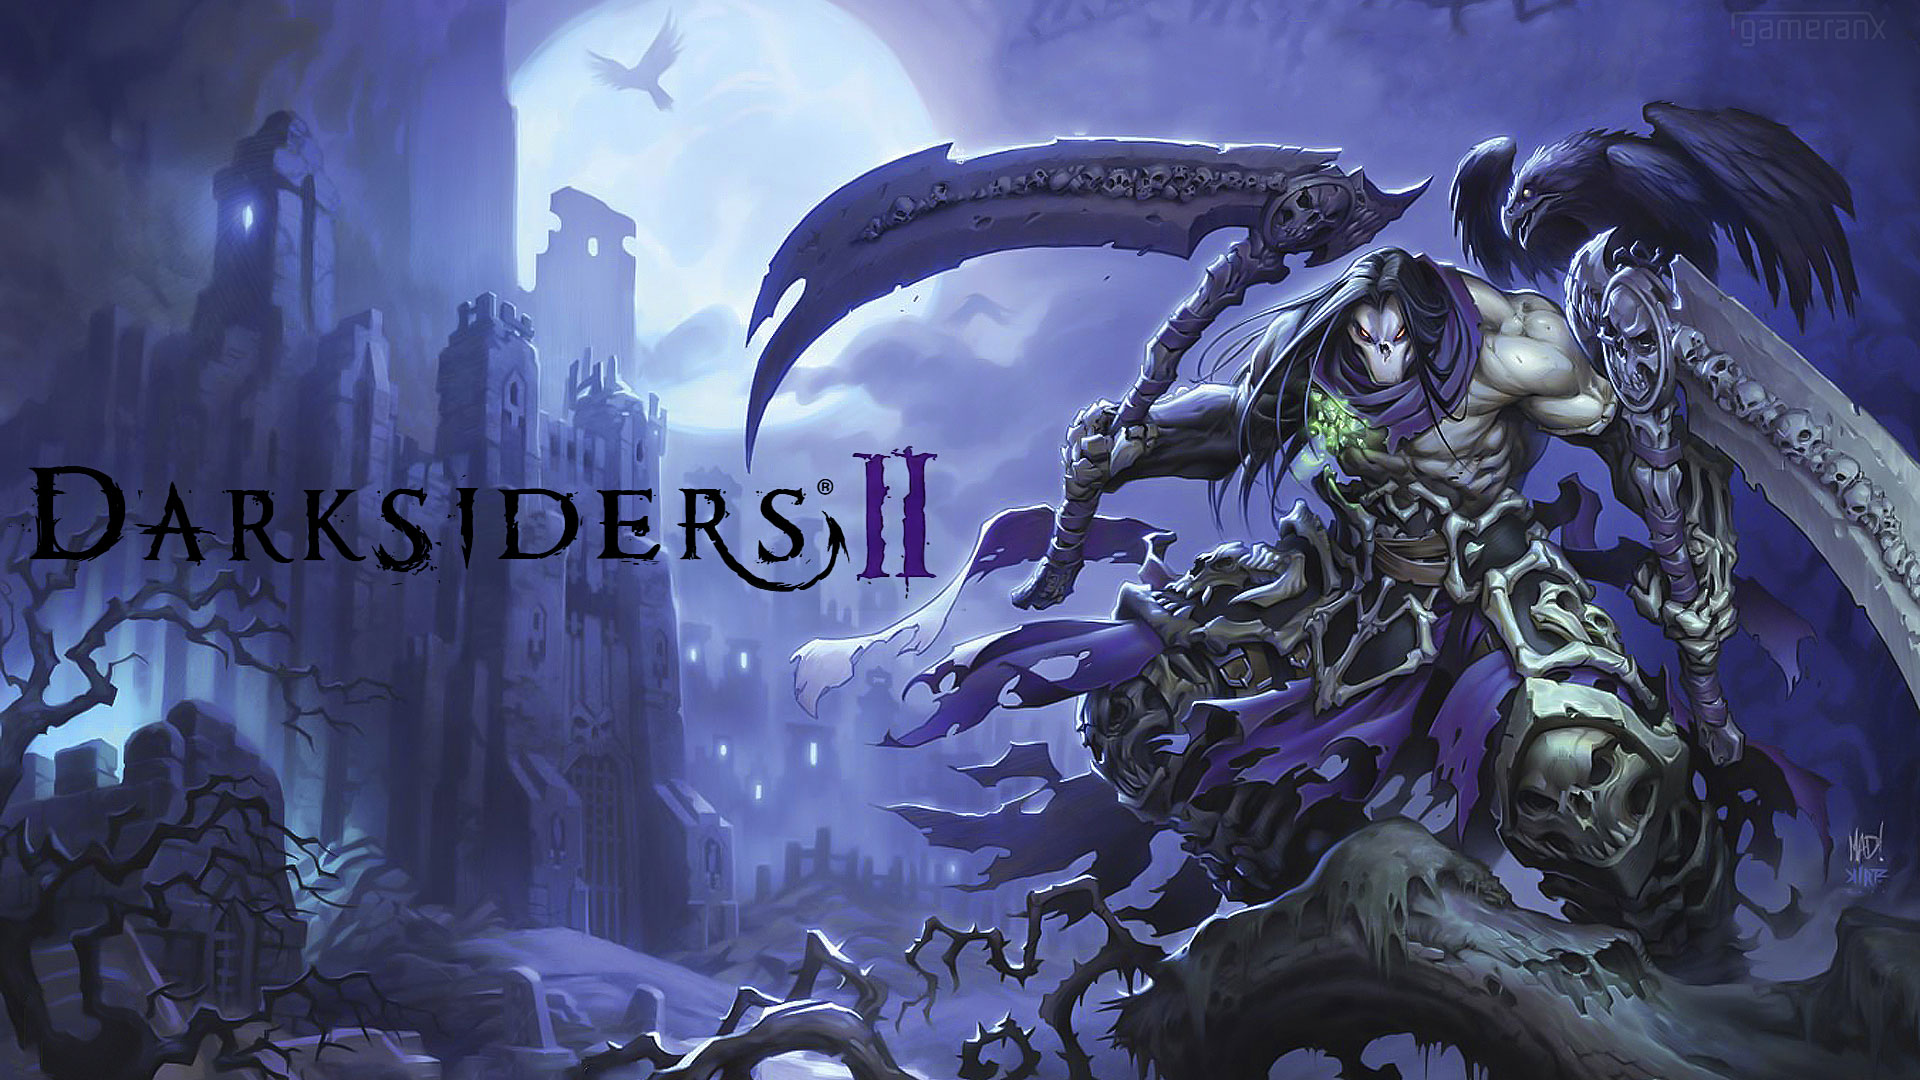 imageswallpapersdarksiders 2darksiders 2 wallpapers hd 1080pjpg 1920x1080